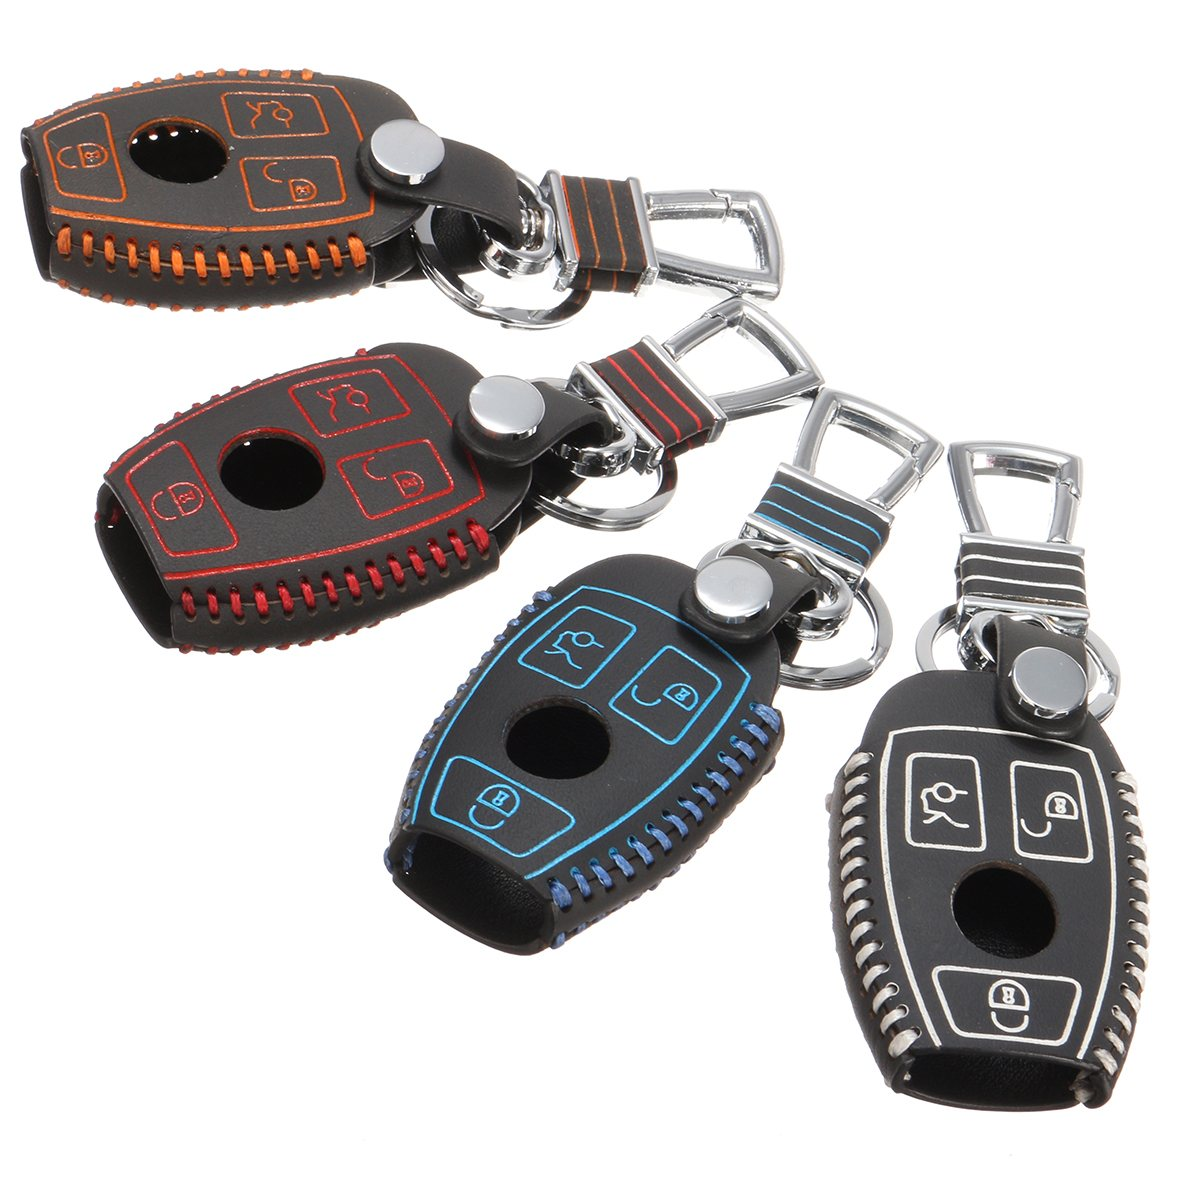 3 Buttons Car Key Remote Fob Cover Shell For Mercedes-Benz C E S M GLK CLS CLK PU Leather